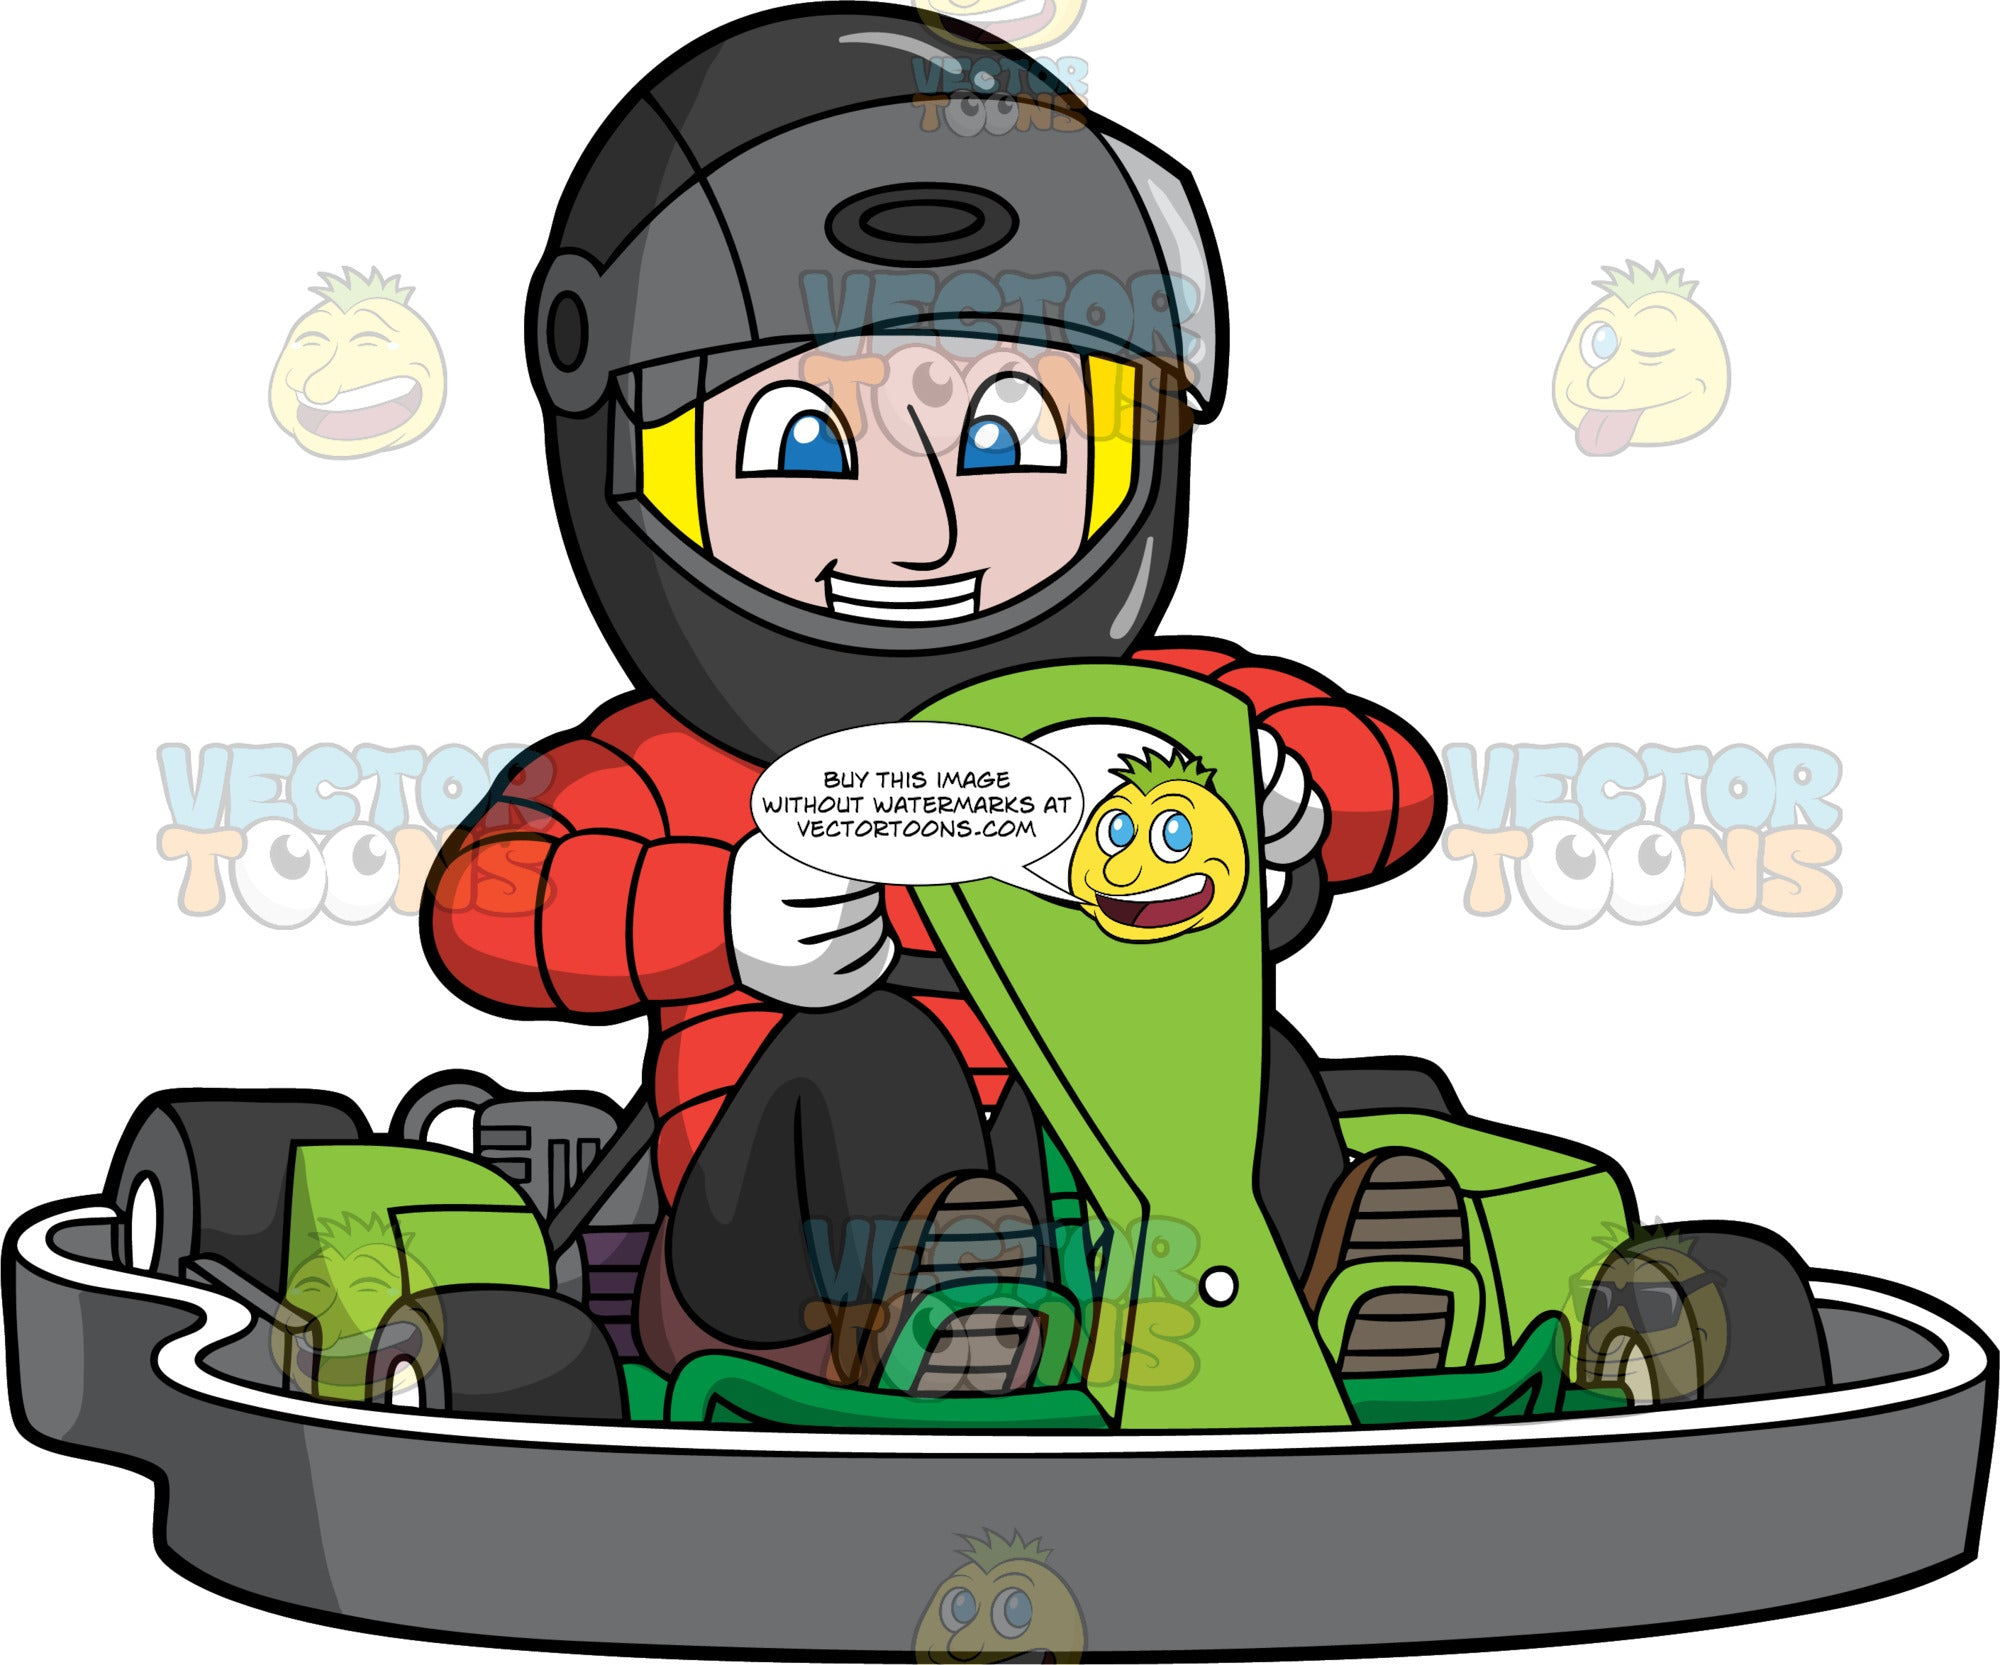 A Happy Man Having Fun Driving A Go-Kart. A man wearing a full face helmet with the visor lifted up, red jacket and black pants, smiles as he drives around in a green go-kart